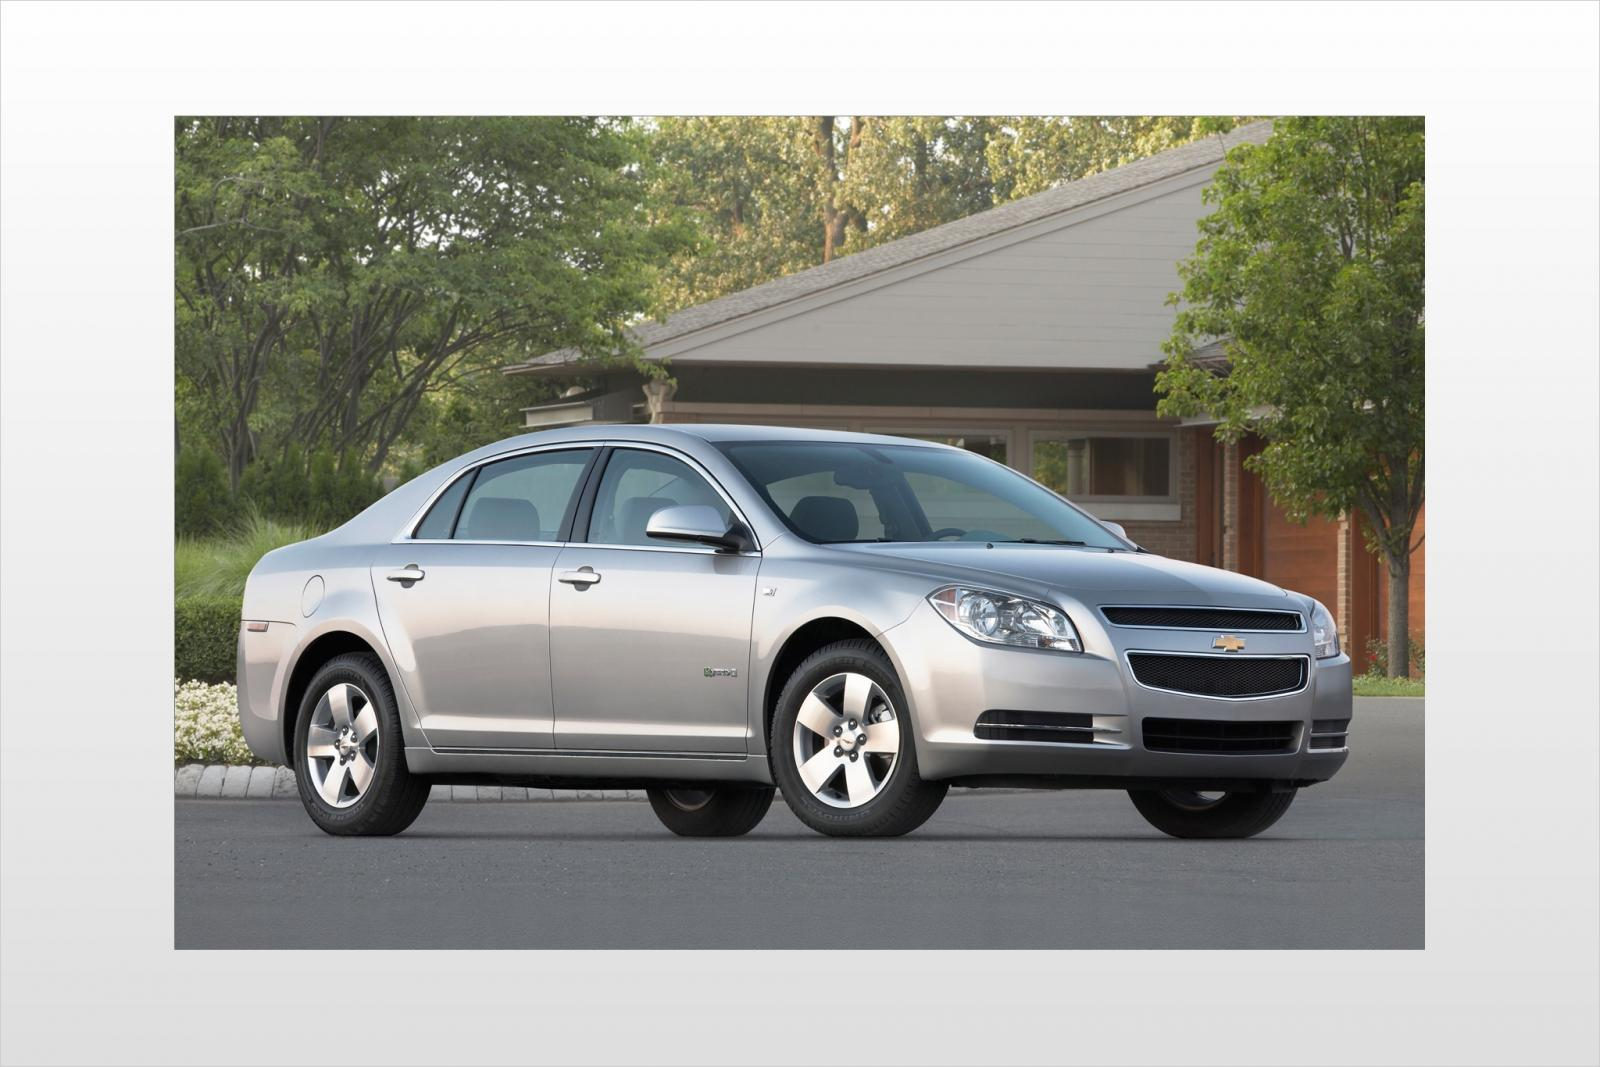 2009 chevrolet malibu hybrid information and photos zombiedrive. Black Bedroom Furniture Sets. Home Design Ideas